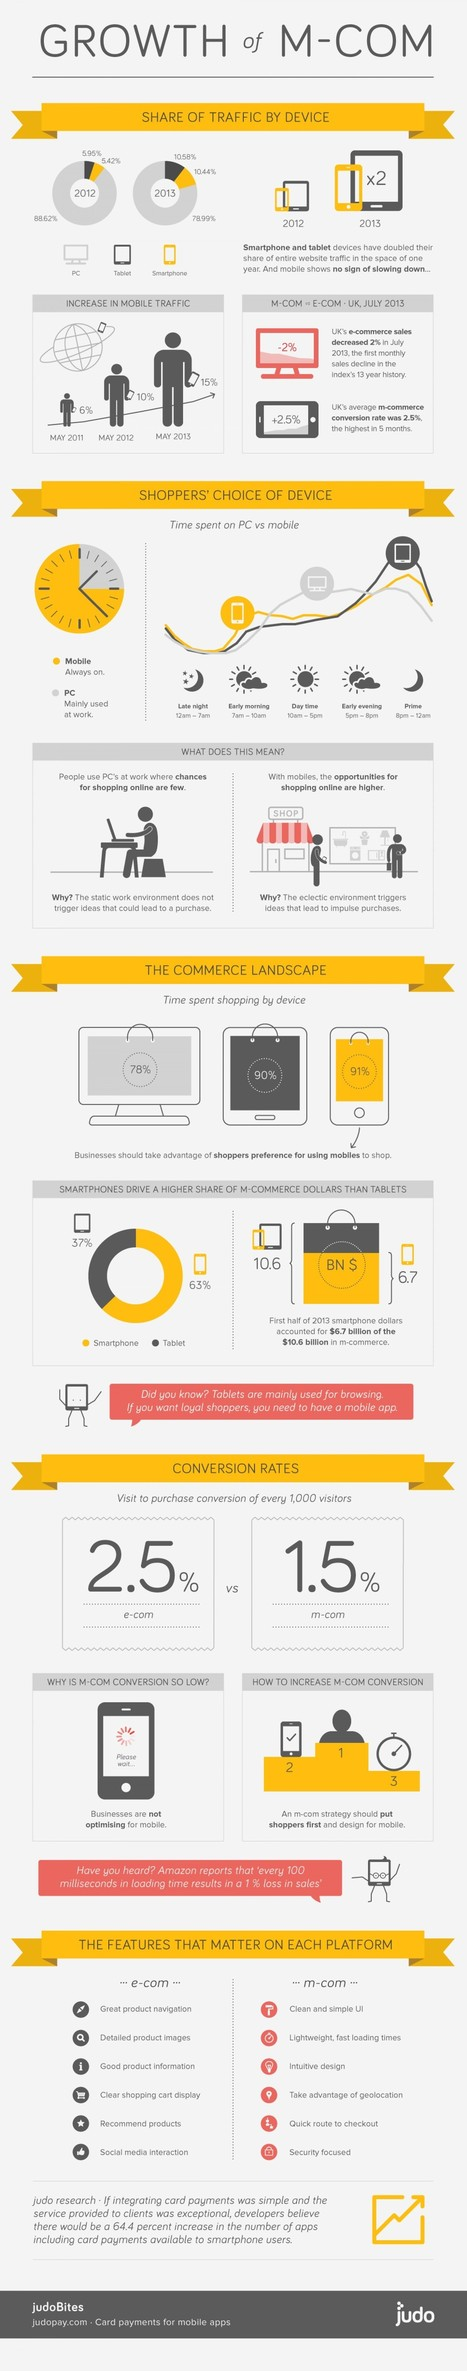 Growth Of mCommerce [INFOGRAPHIC] | M-COMMERCE | Scoop.it